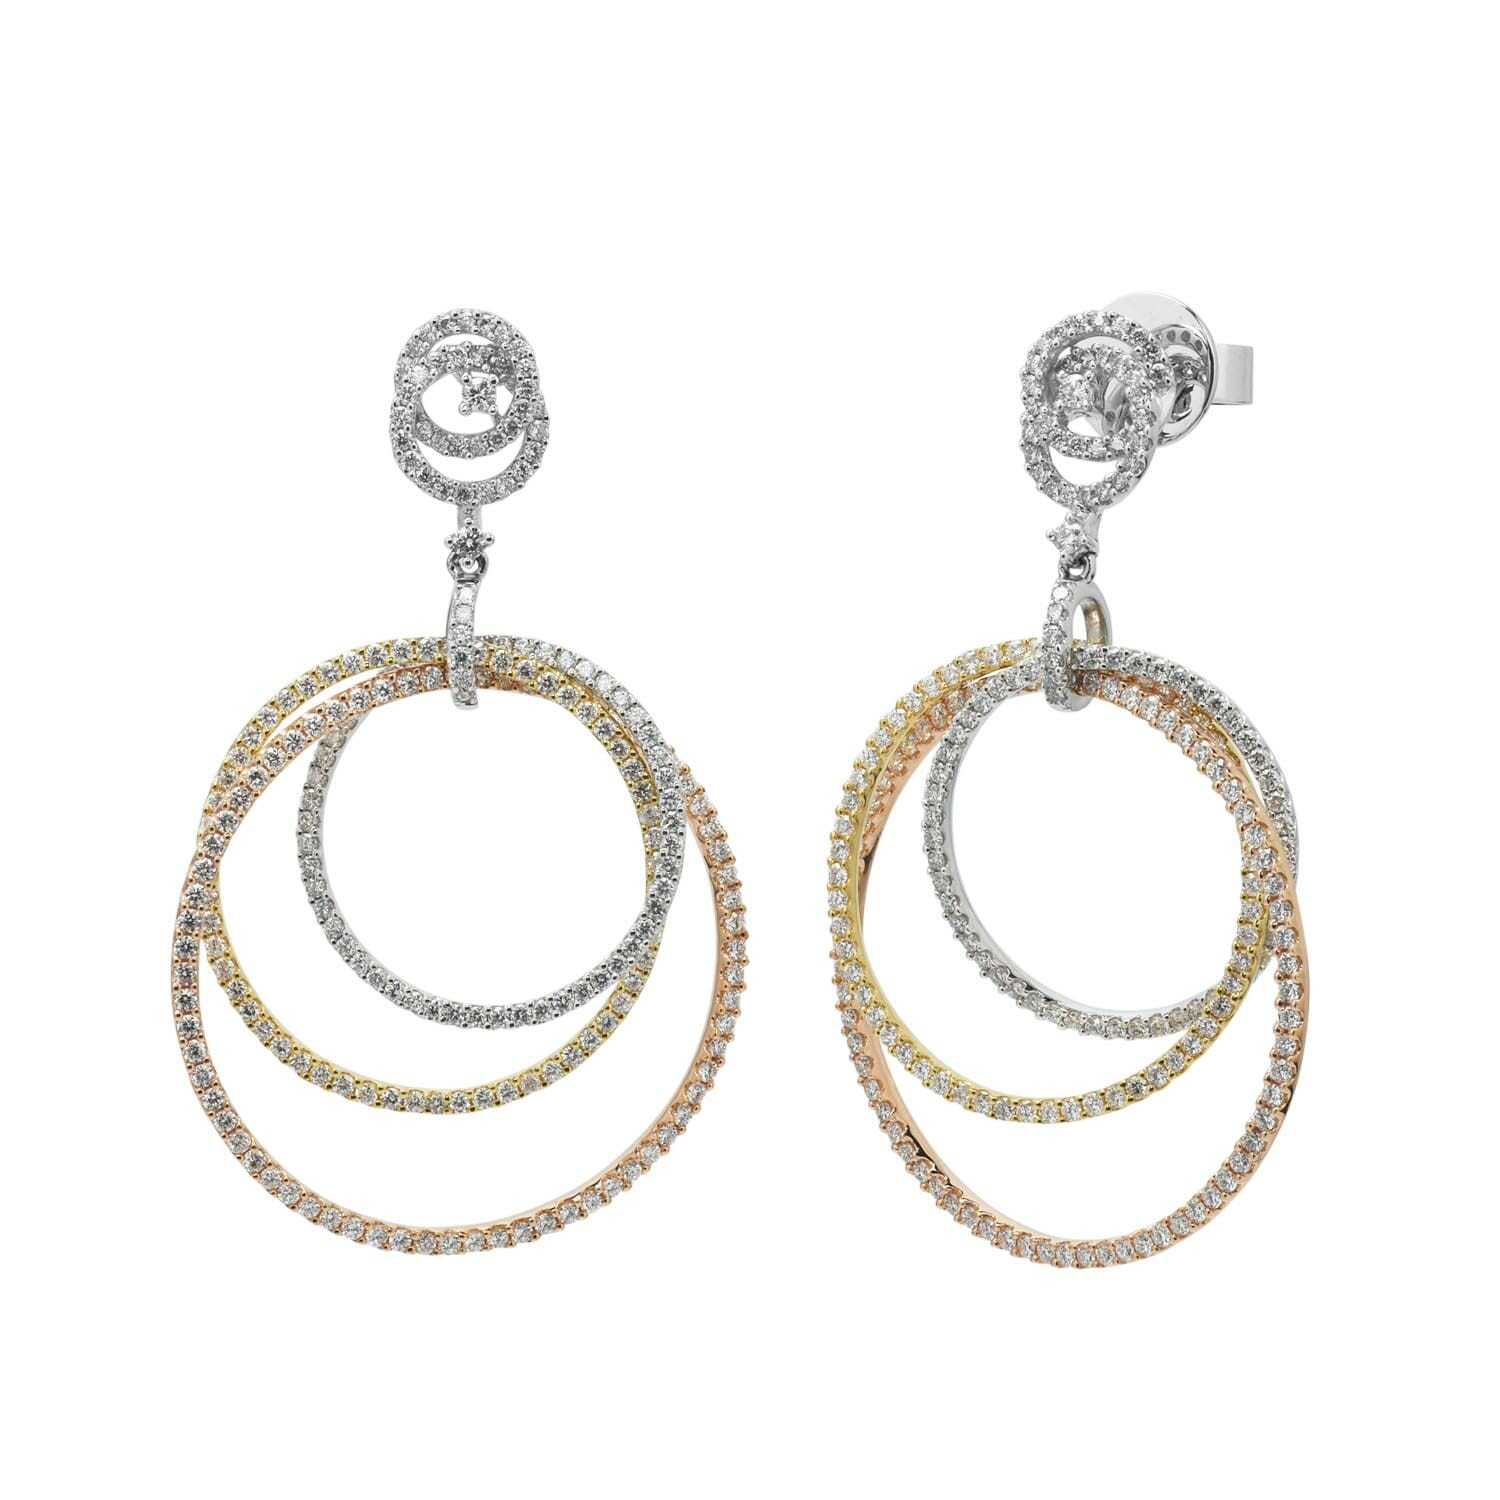 Diamond Circle Earrings in 18kt White Yellow and Rose Gold